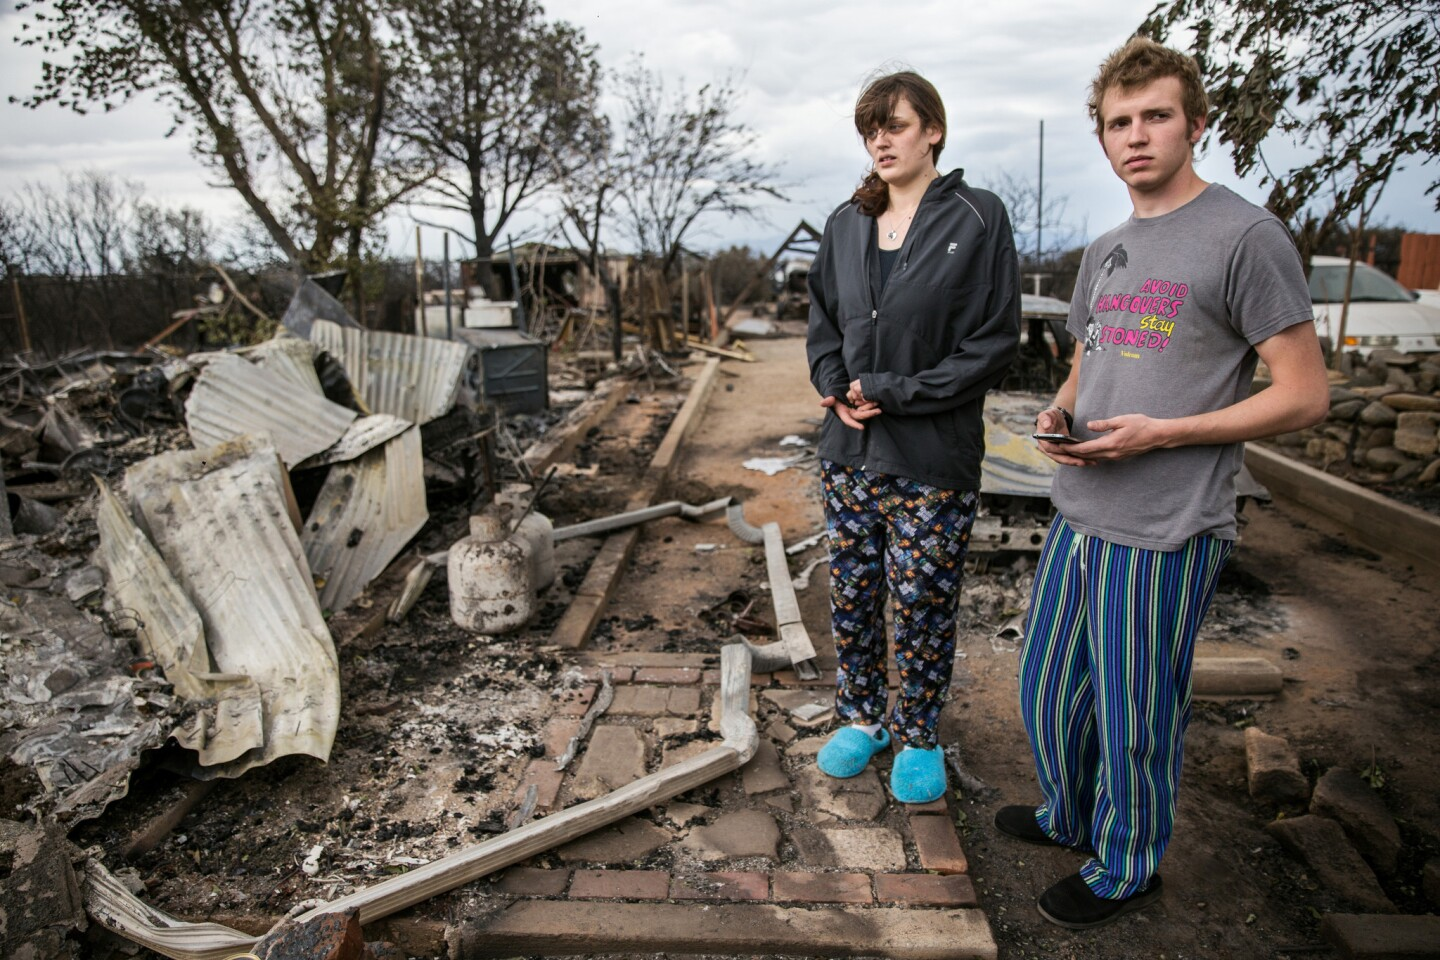 Andrew Eblen and his fiancee, Britany Carpenter, examine the ruins of their home, which was destroyed in the North fire. The couple recently renovated the home, Eblen's childhood residence, and was going to move in in a few months.